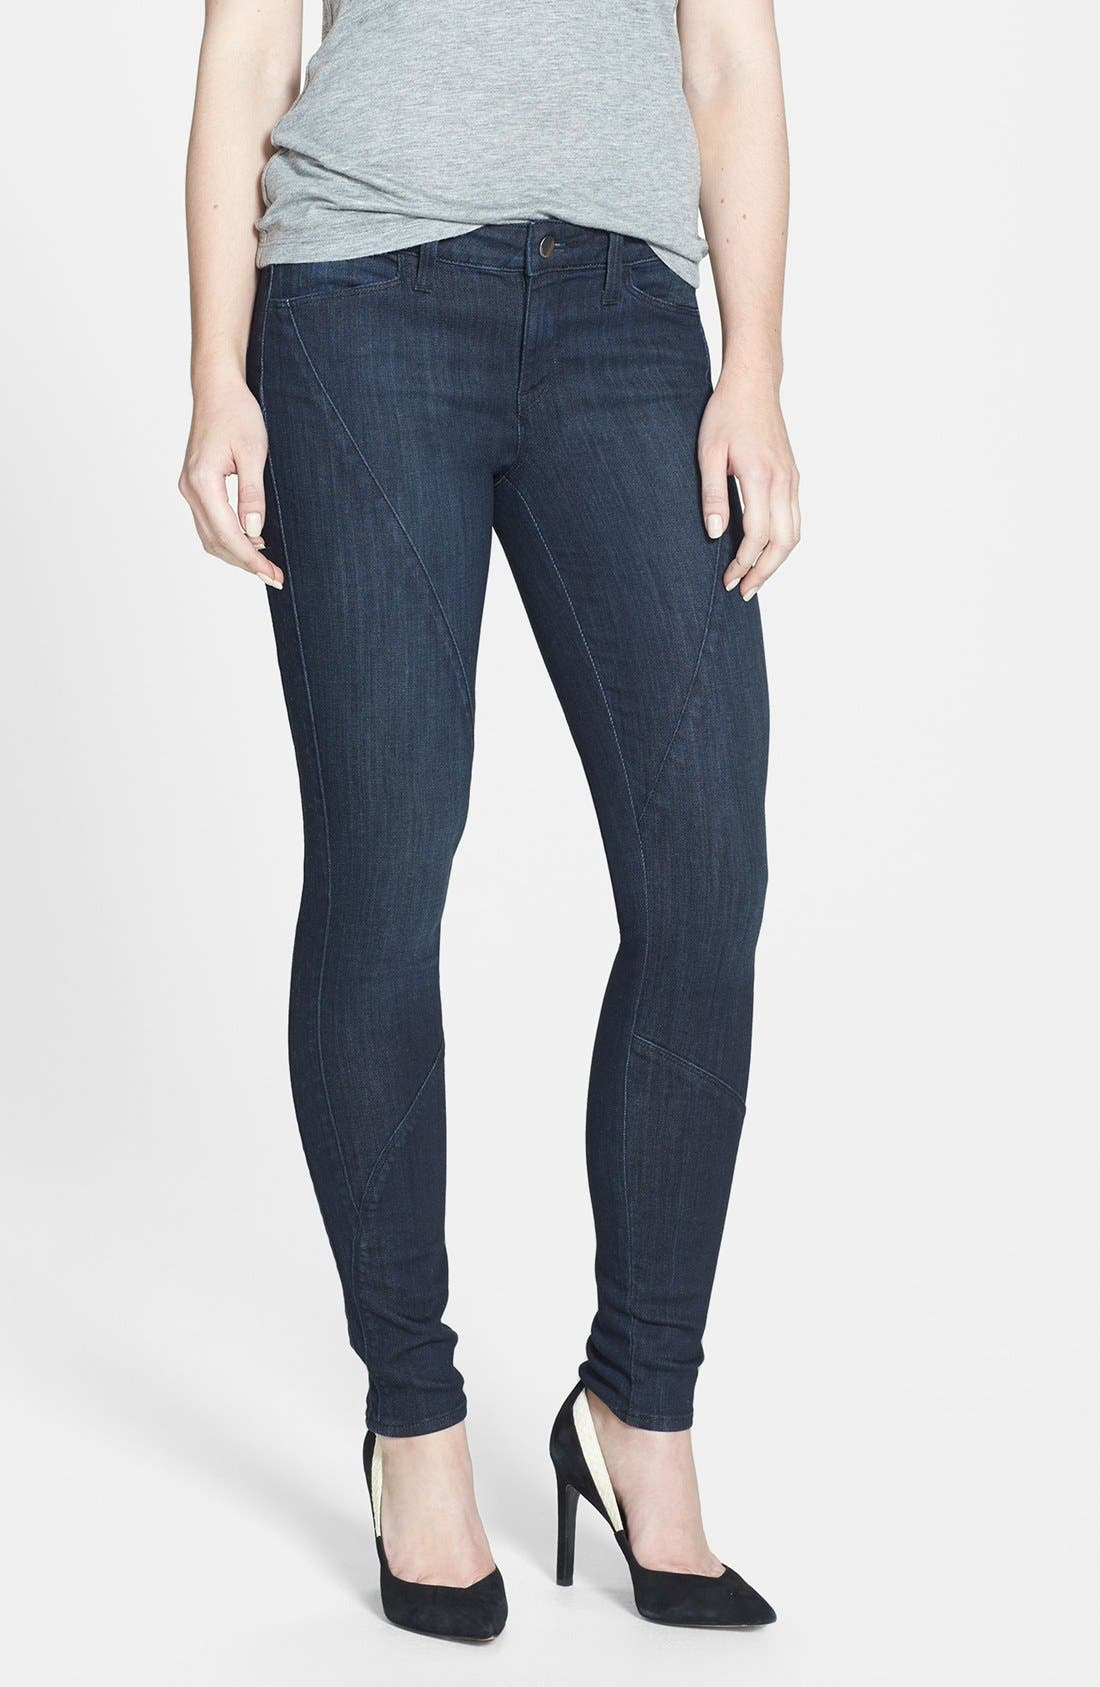 Alternate Image 1 Selected - Genetic 'Semira' Seamed Cigarette Skinny Jeans (Impulse)